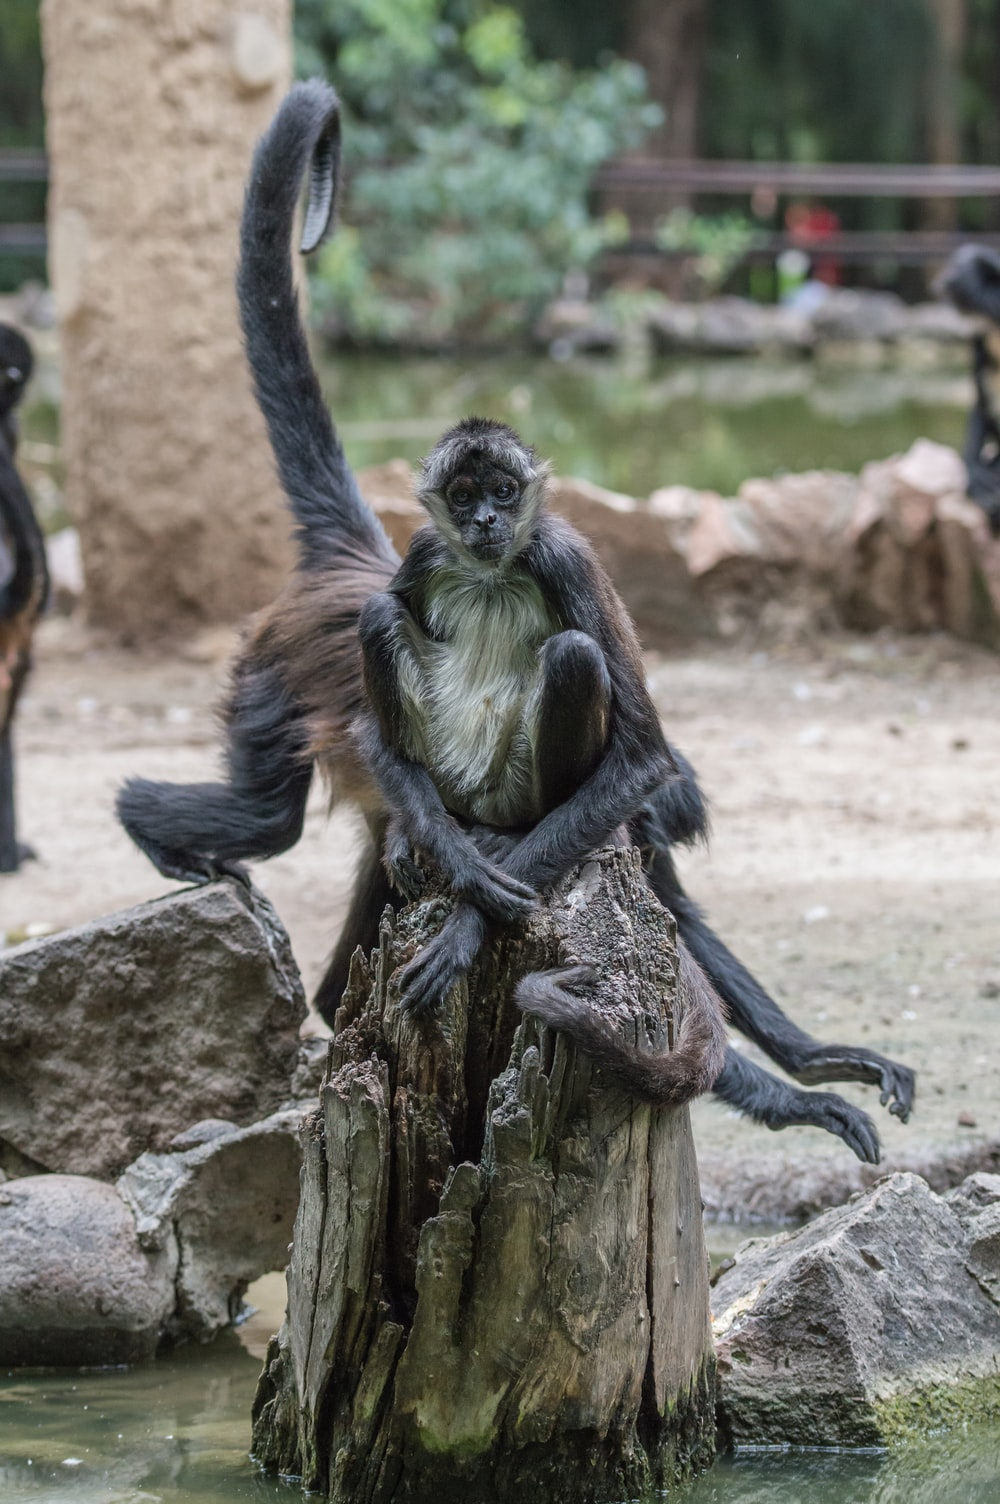 black monkey sitting on tree slab